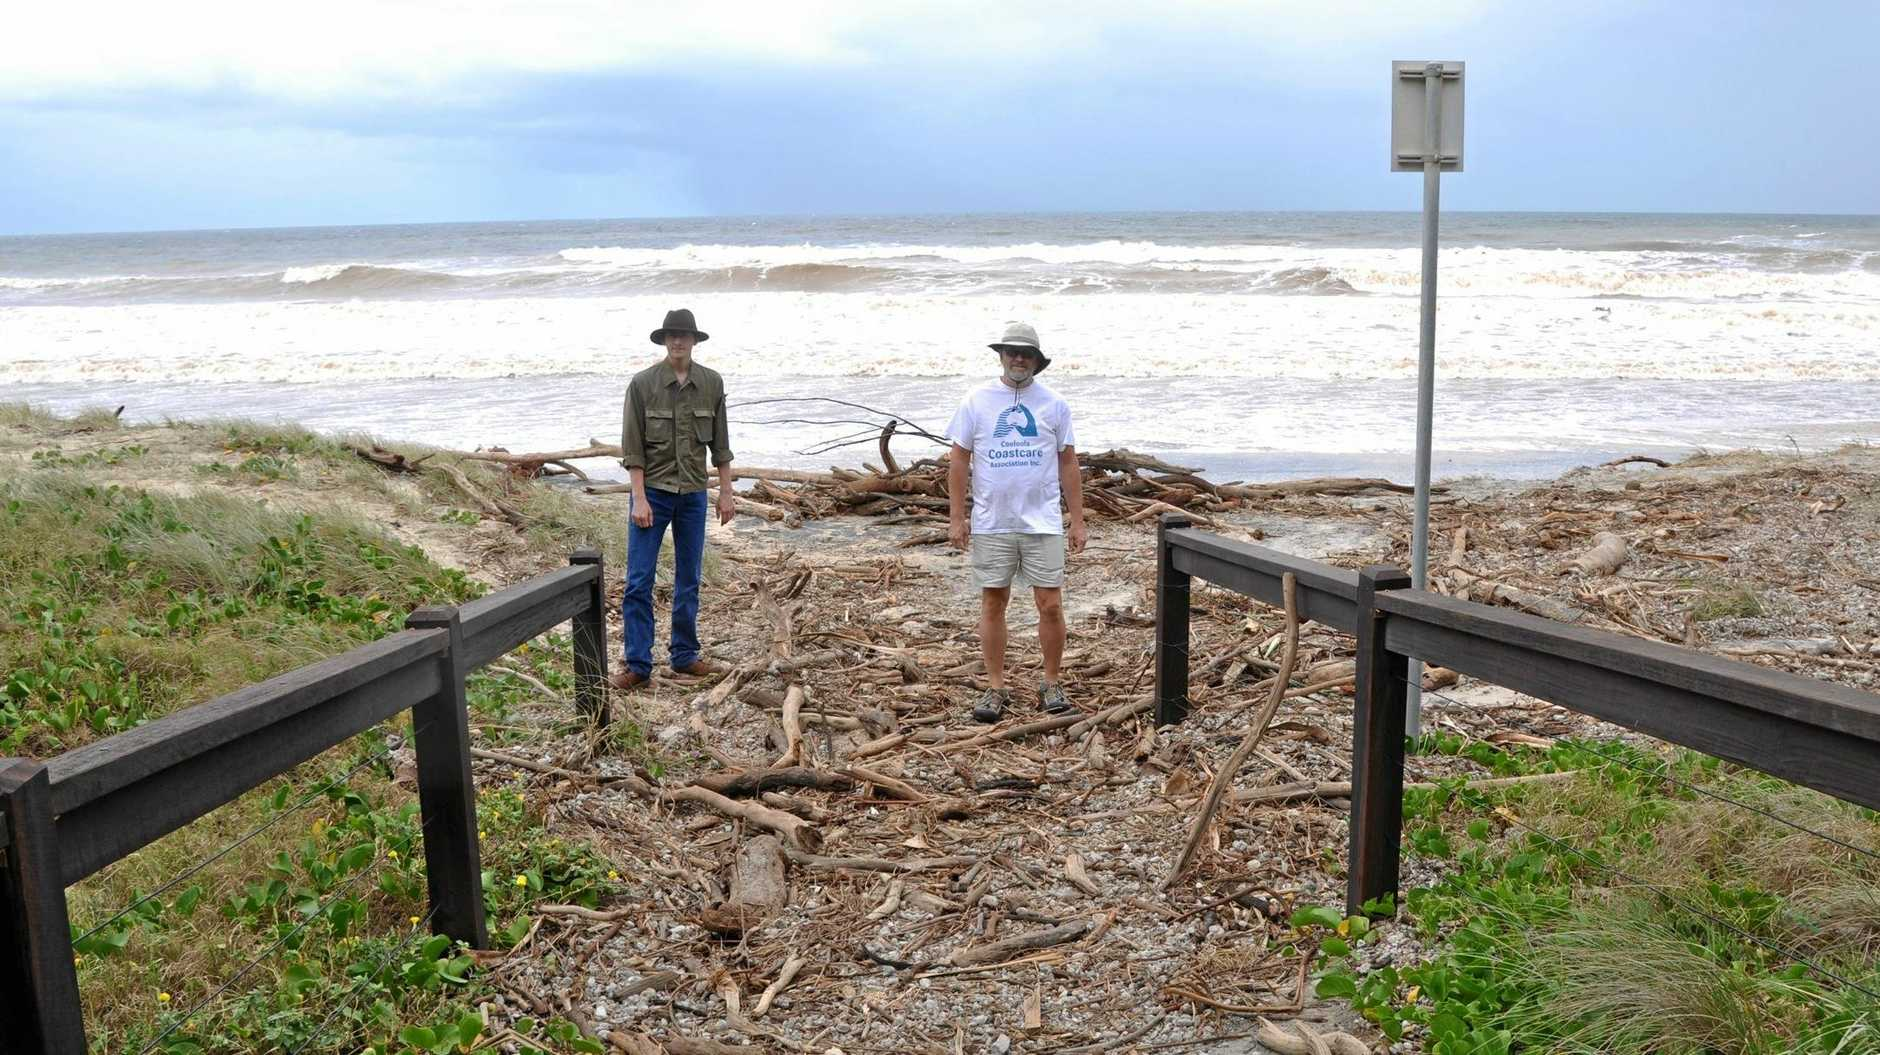 BIG LOSS: Randy Orwin, president of Cooloola Coastcare and his son Hagen Orwin assess damage at Rainbow Beach yesterday.